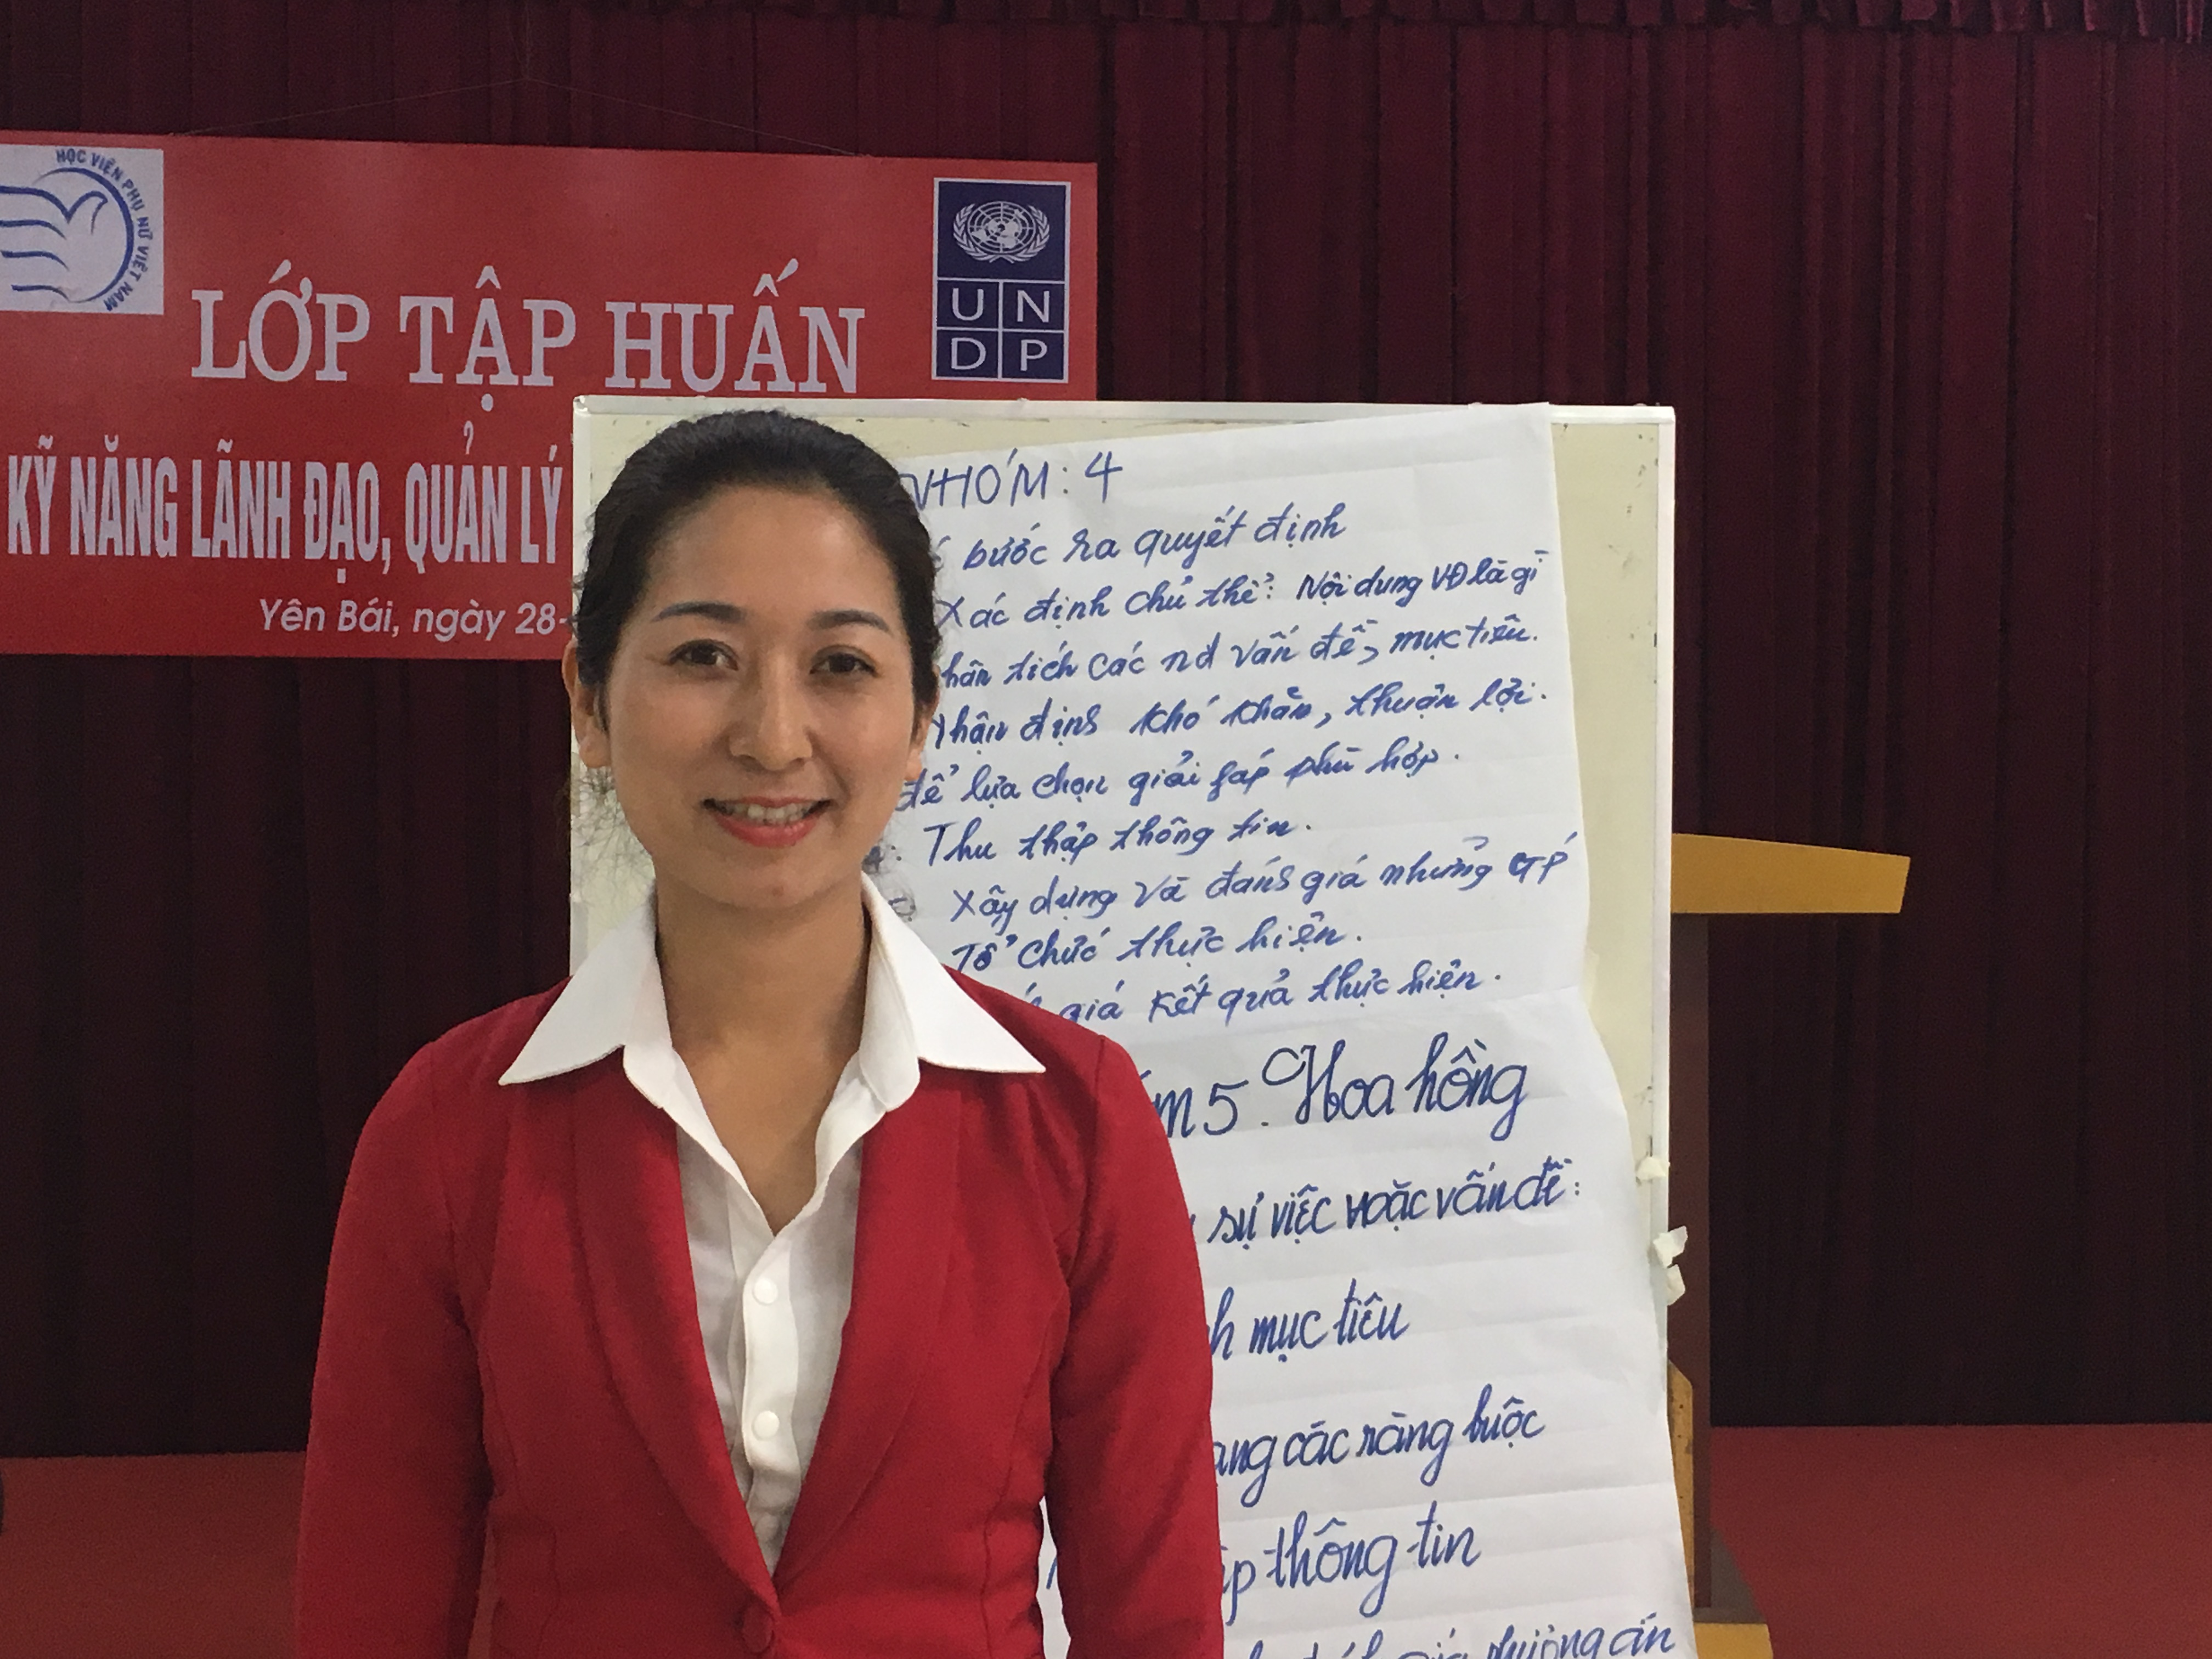 Leaving No One Behind – Empowering Women in Ethnic Communities